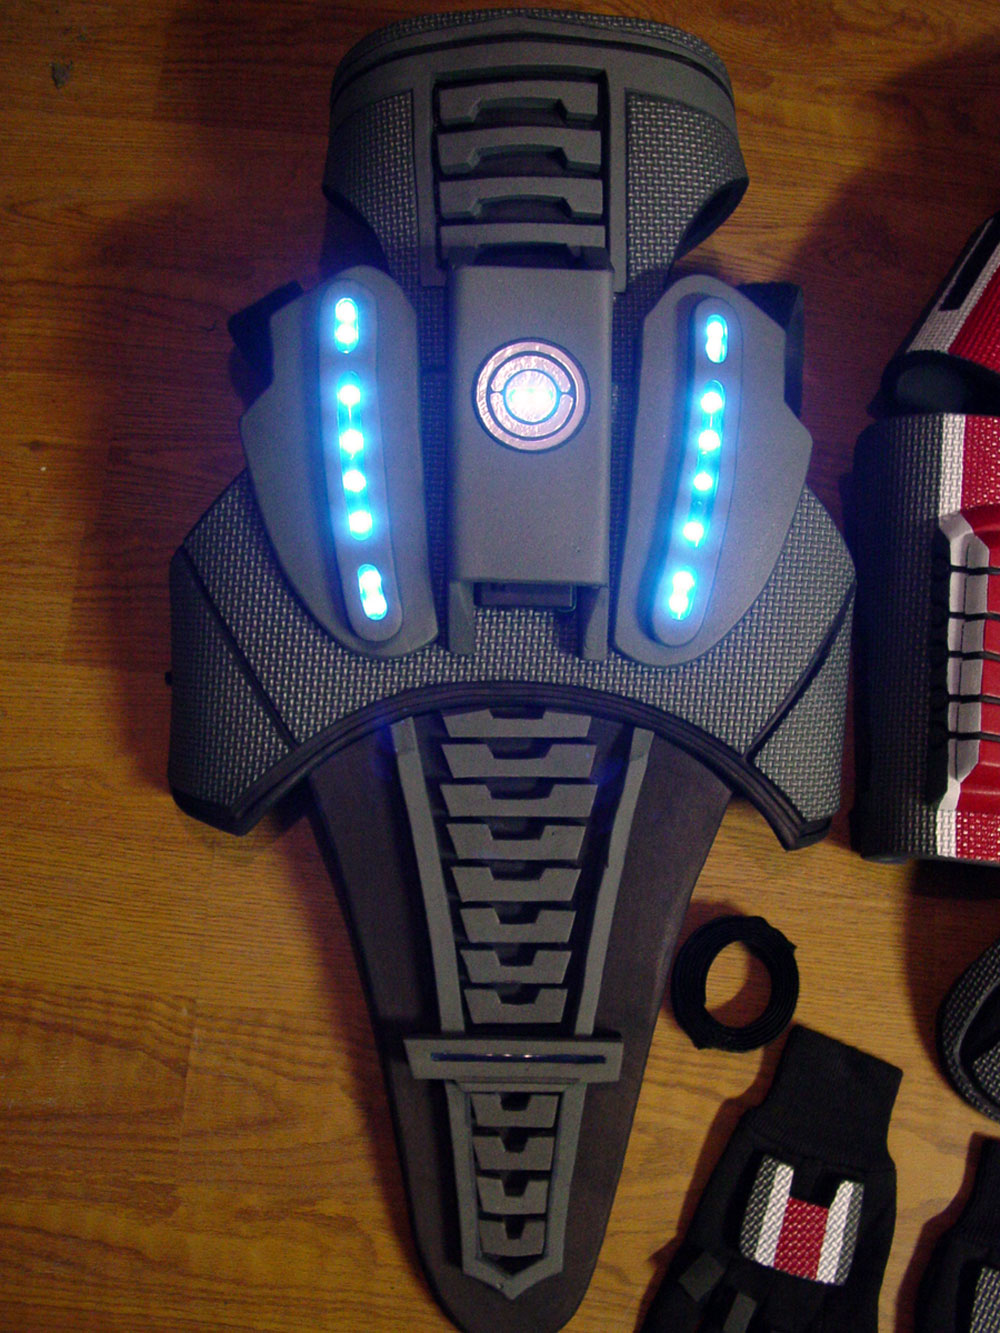 EVA Foam Armor http://www.extravaganzi.com/mass-effect-n7-armor-for-sci-fi-action-video-game-geeks/